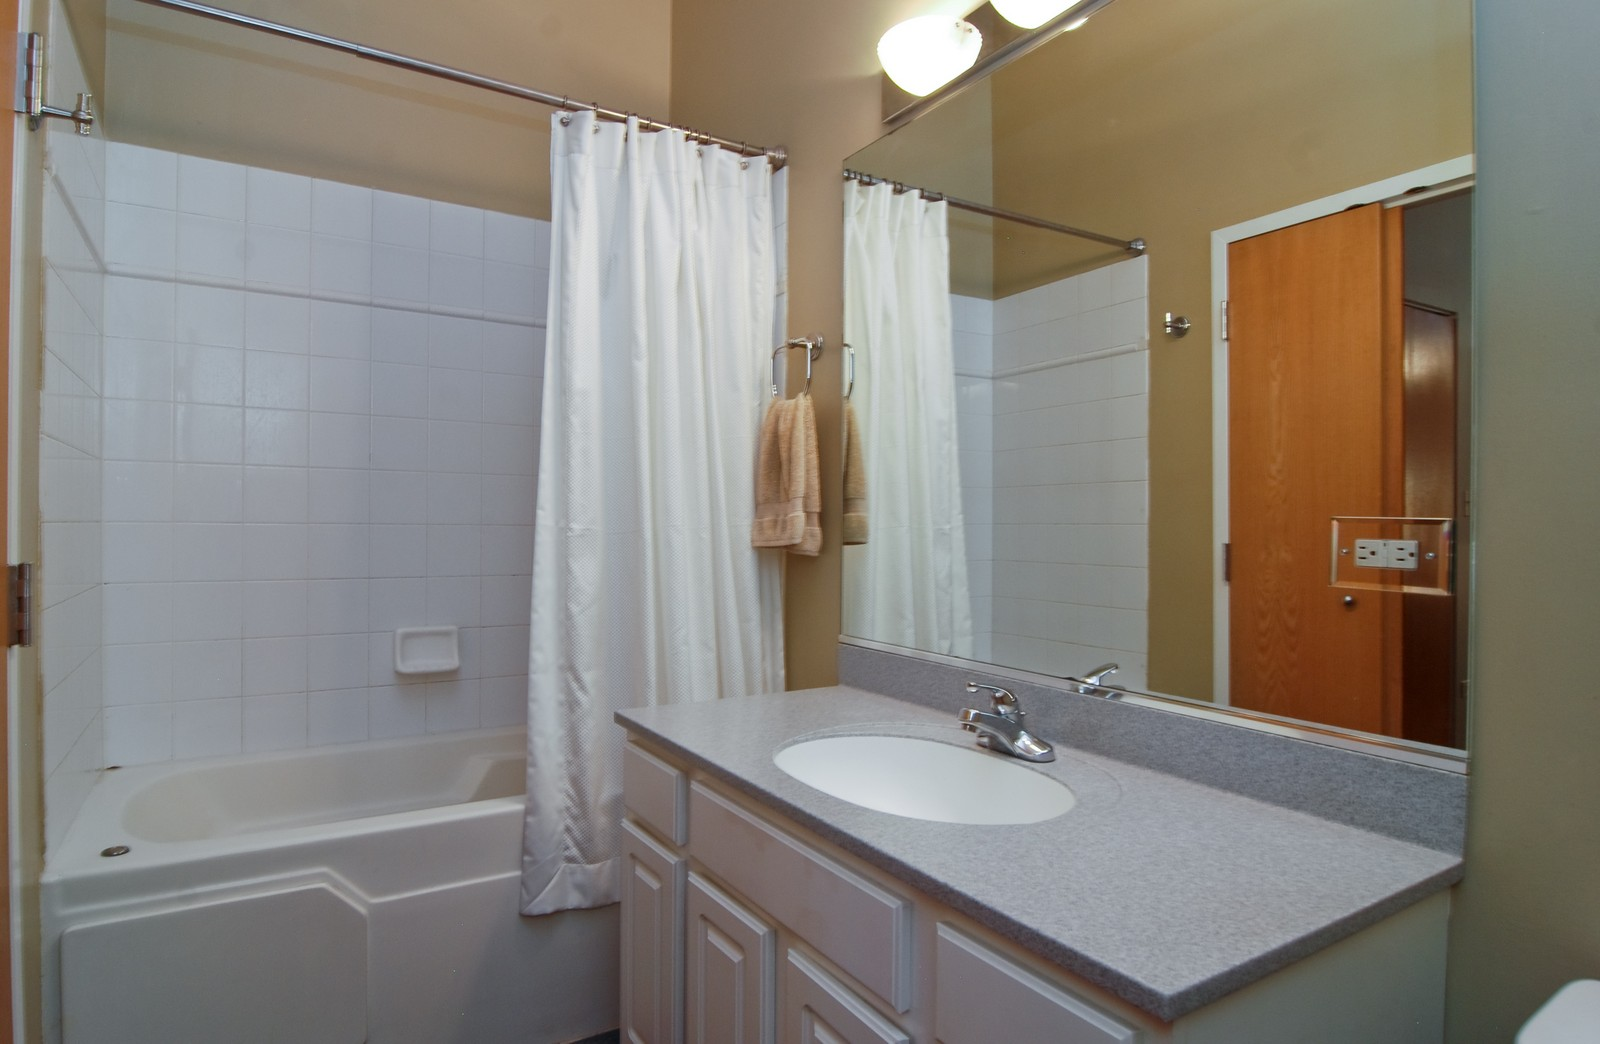 Real Estate Photography - 1601 S Michigan, Unit 305, Chicago, IL, 60616 - Bathroom